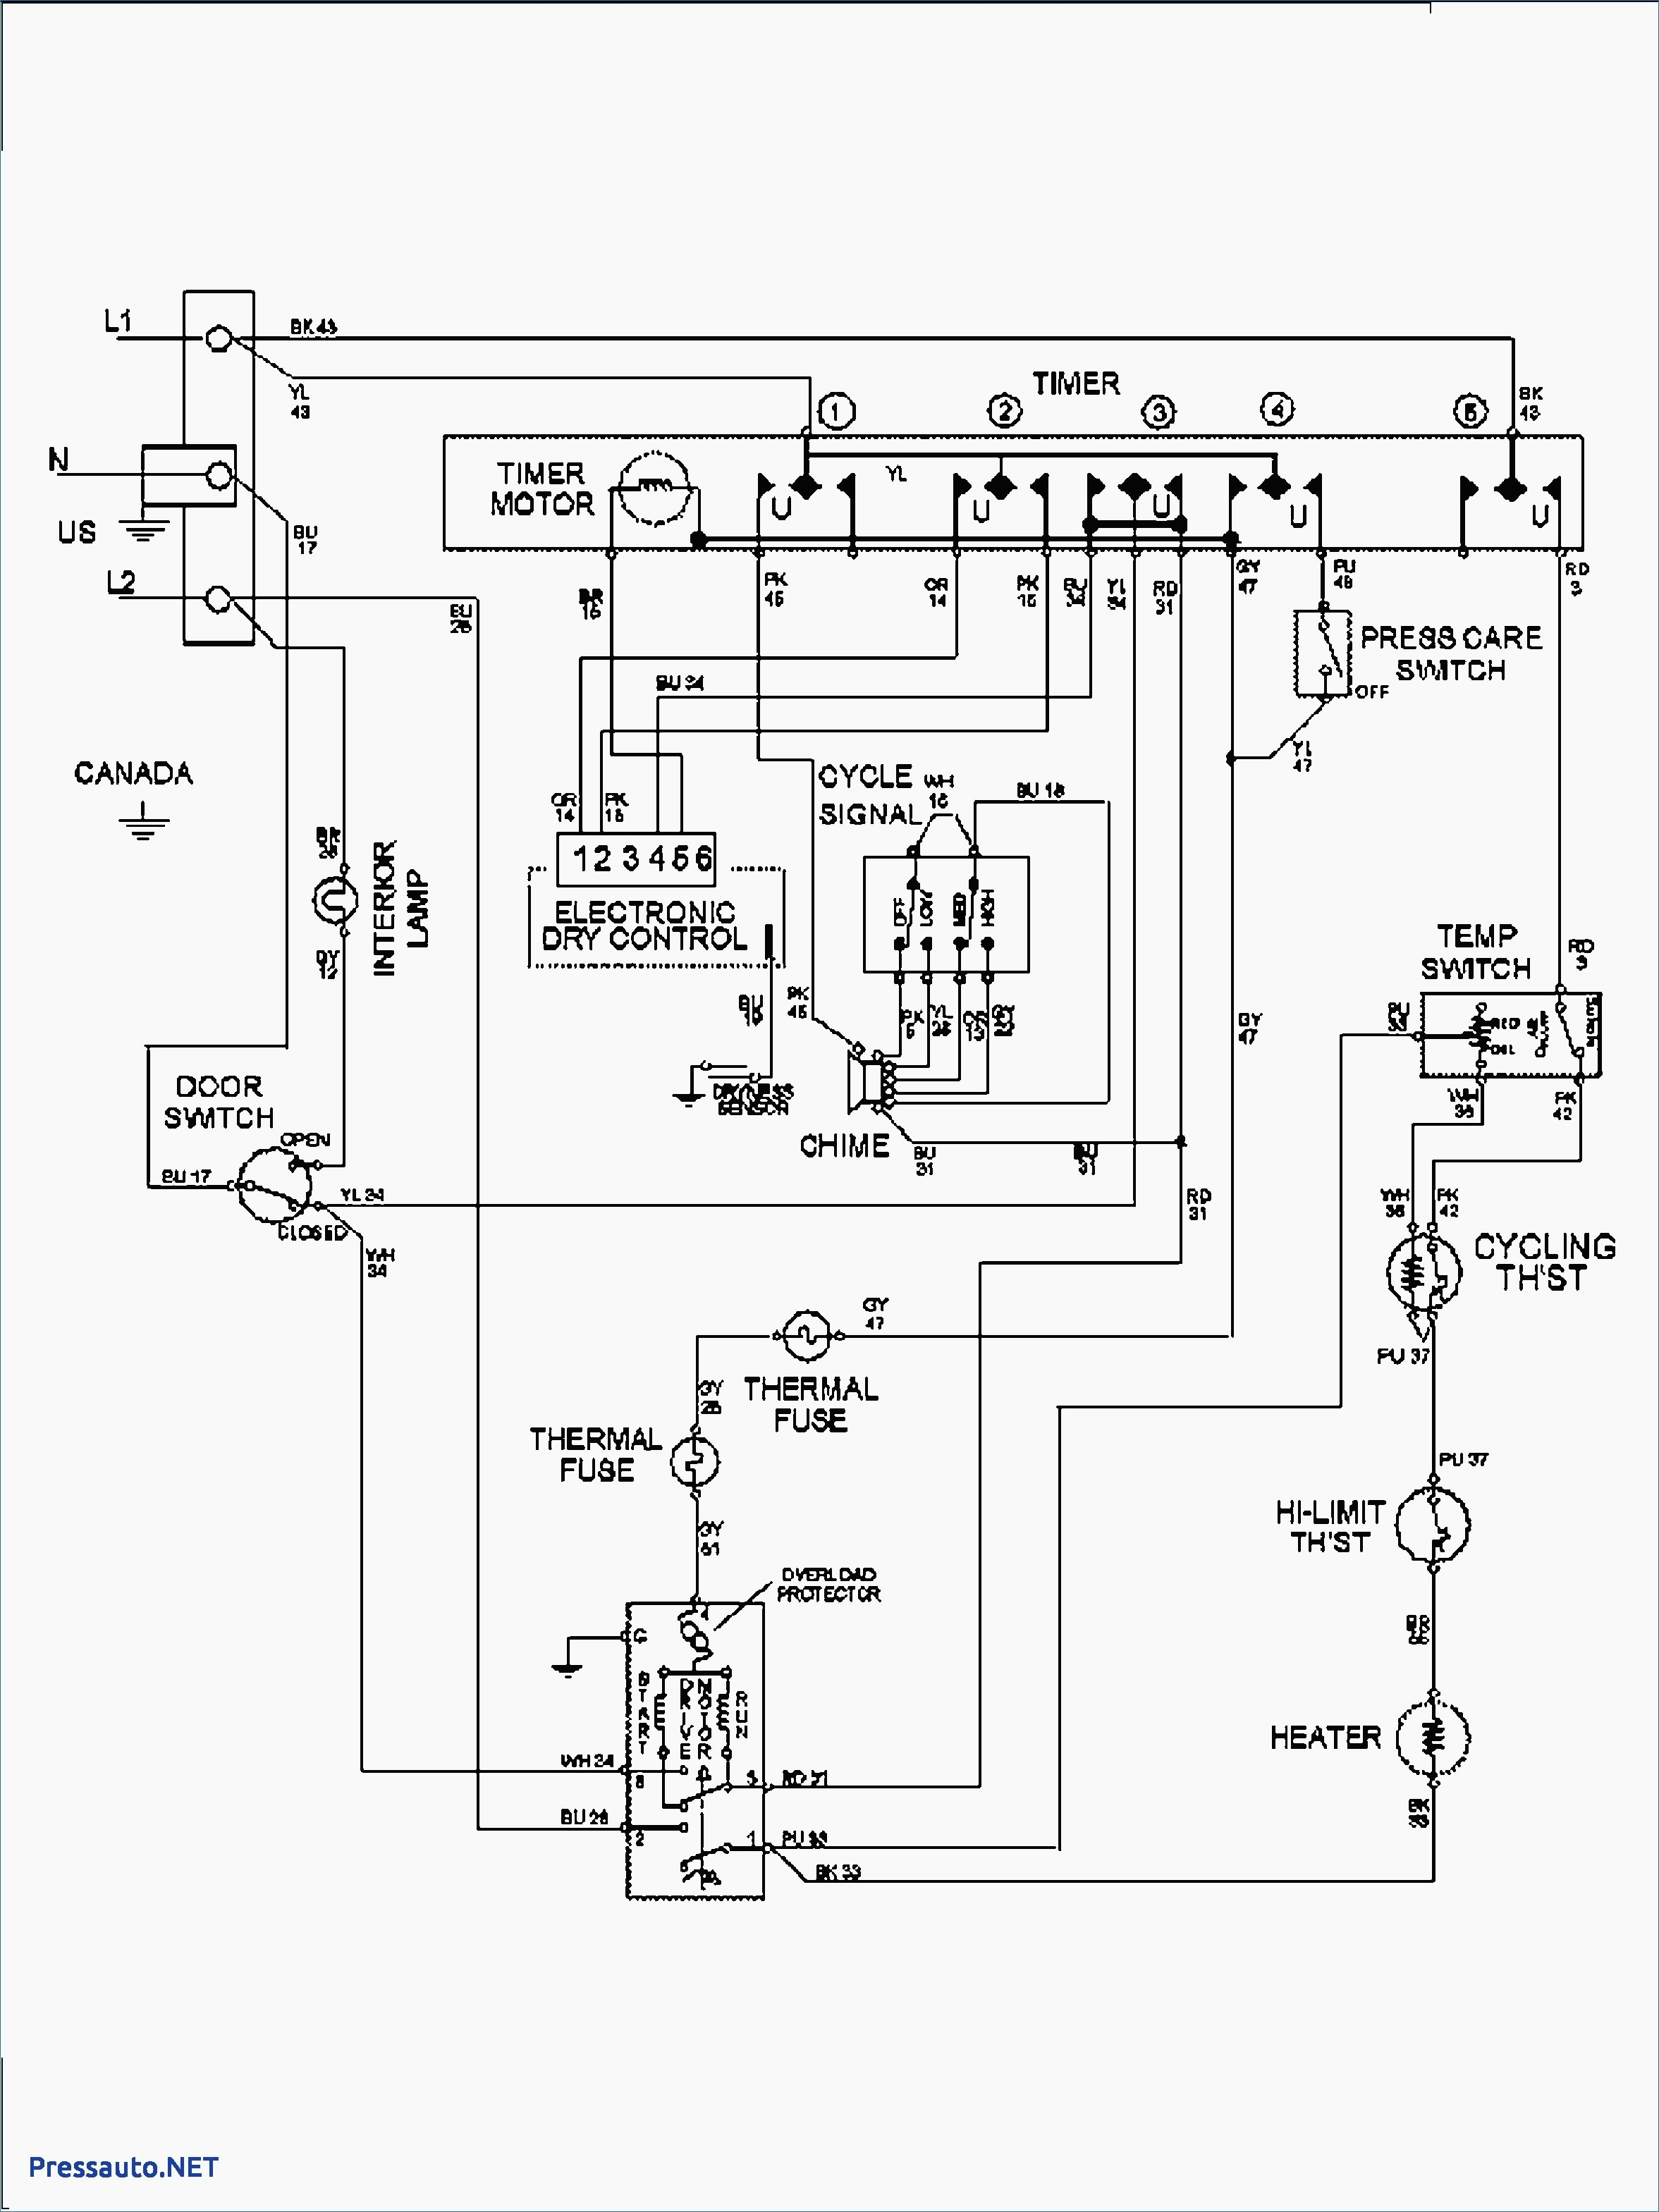 whirlpool electric dryer wiring diagram Download-Wiring Diagram Appliance Dryer Inspirationa Amana Dryer Wiring Diagram Fresh for Whirlpool Unbelievable Chromatex 19-n